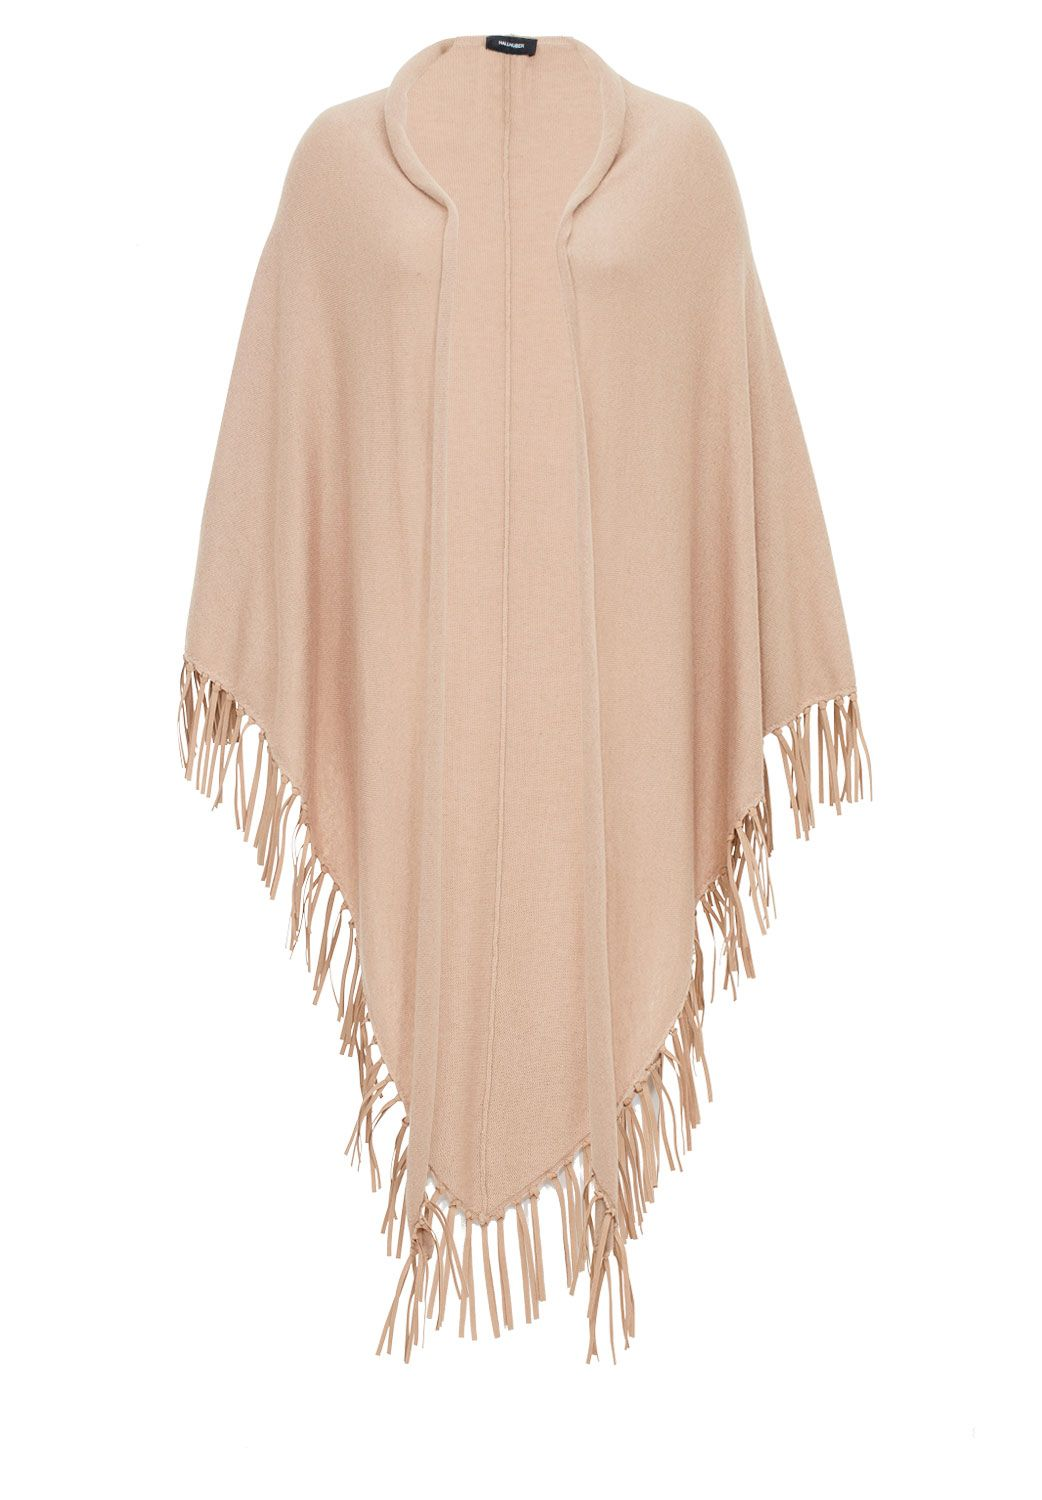 Hallhuber Knit Cape With Fringing Beige £69.00 AT vintagedancer.com